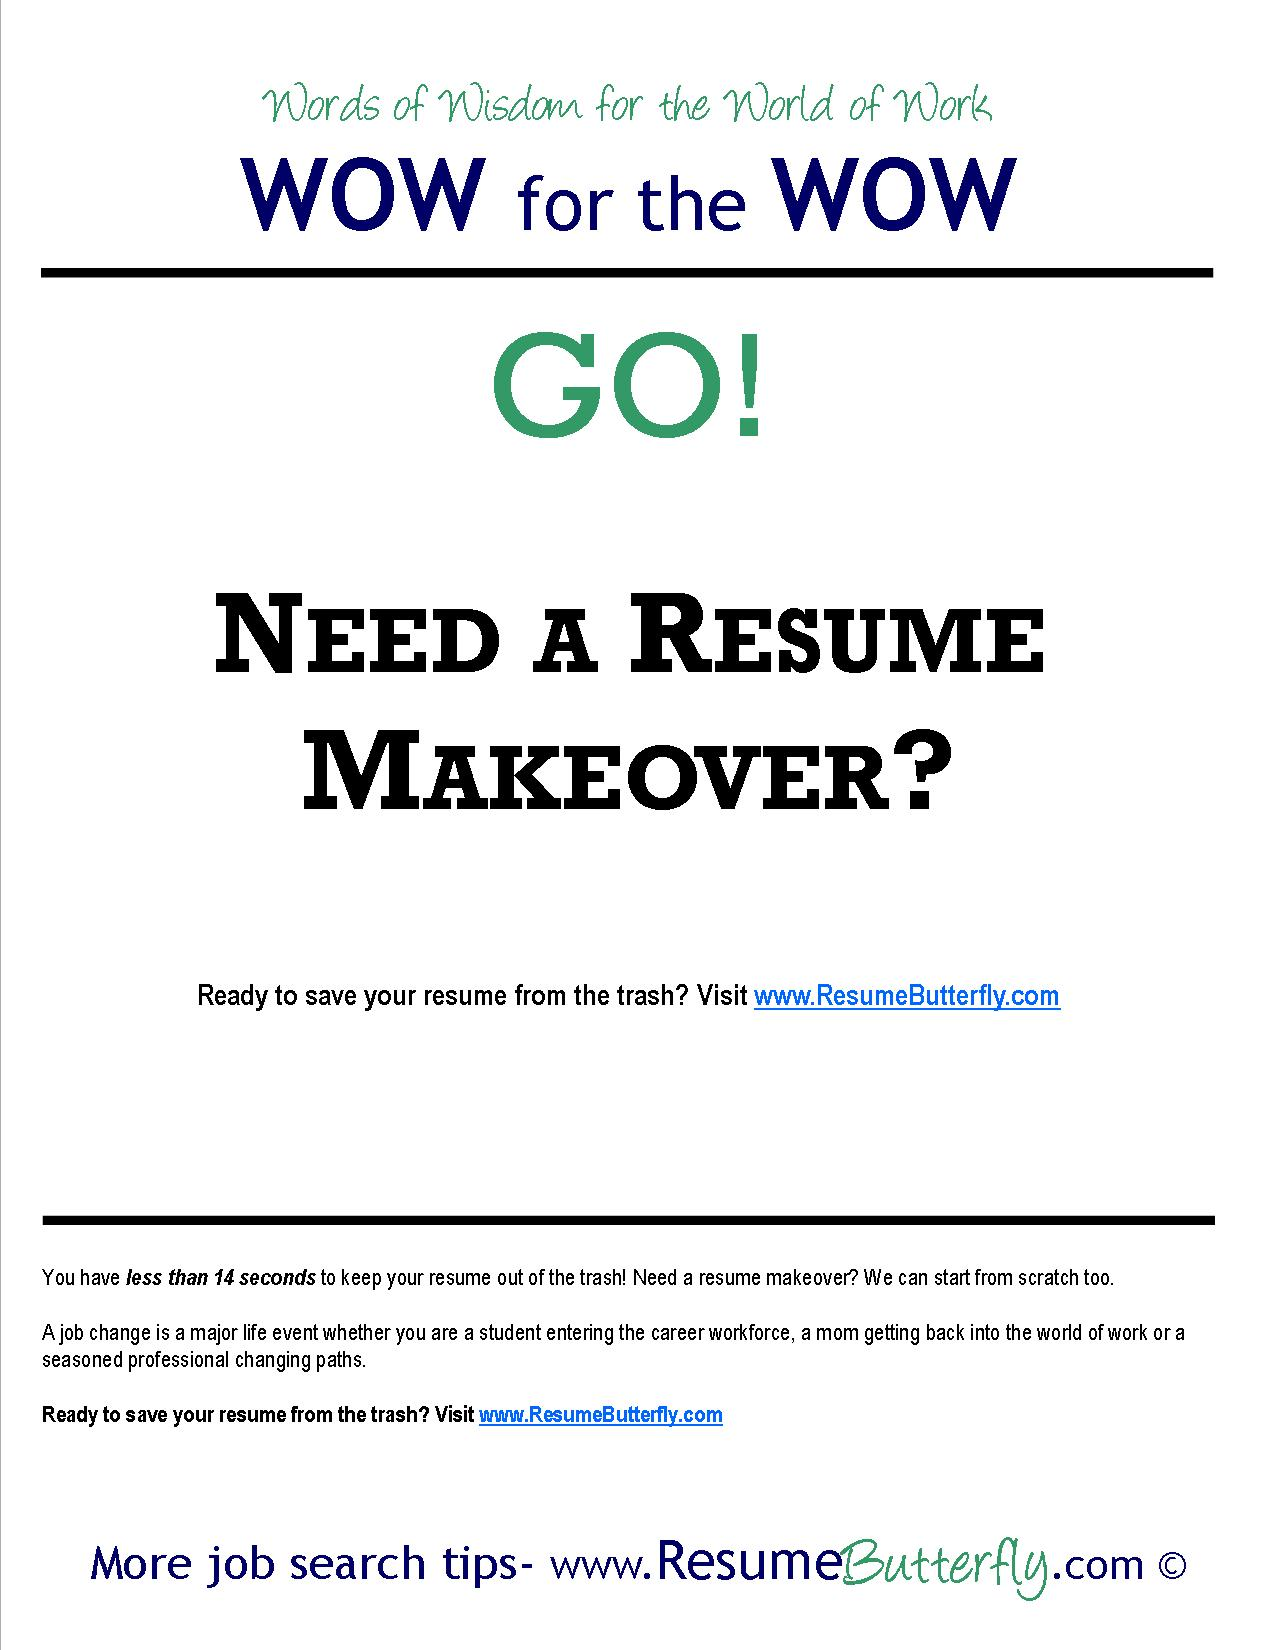 wow for the wow job search skills resume butterfly need a wow for the wow job search skills resume butterfly need a resume makeover